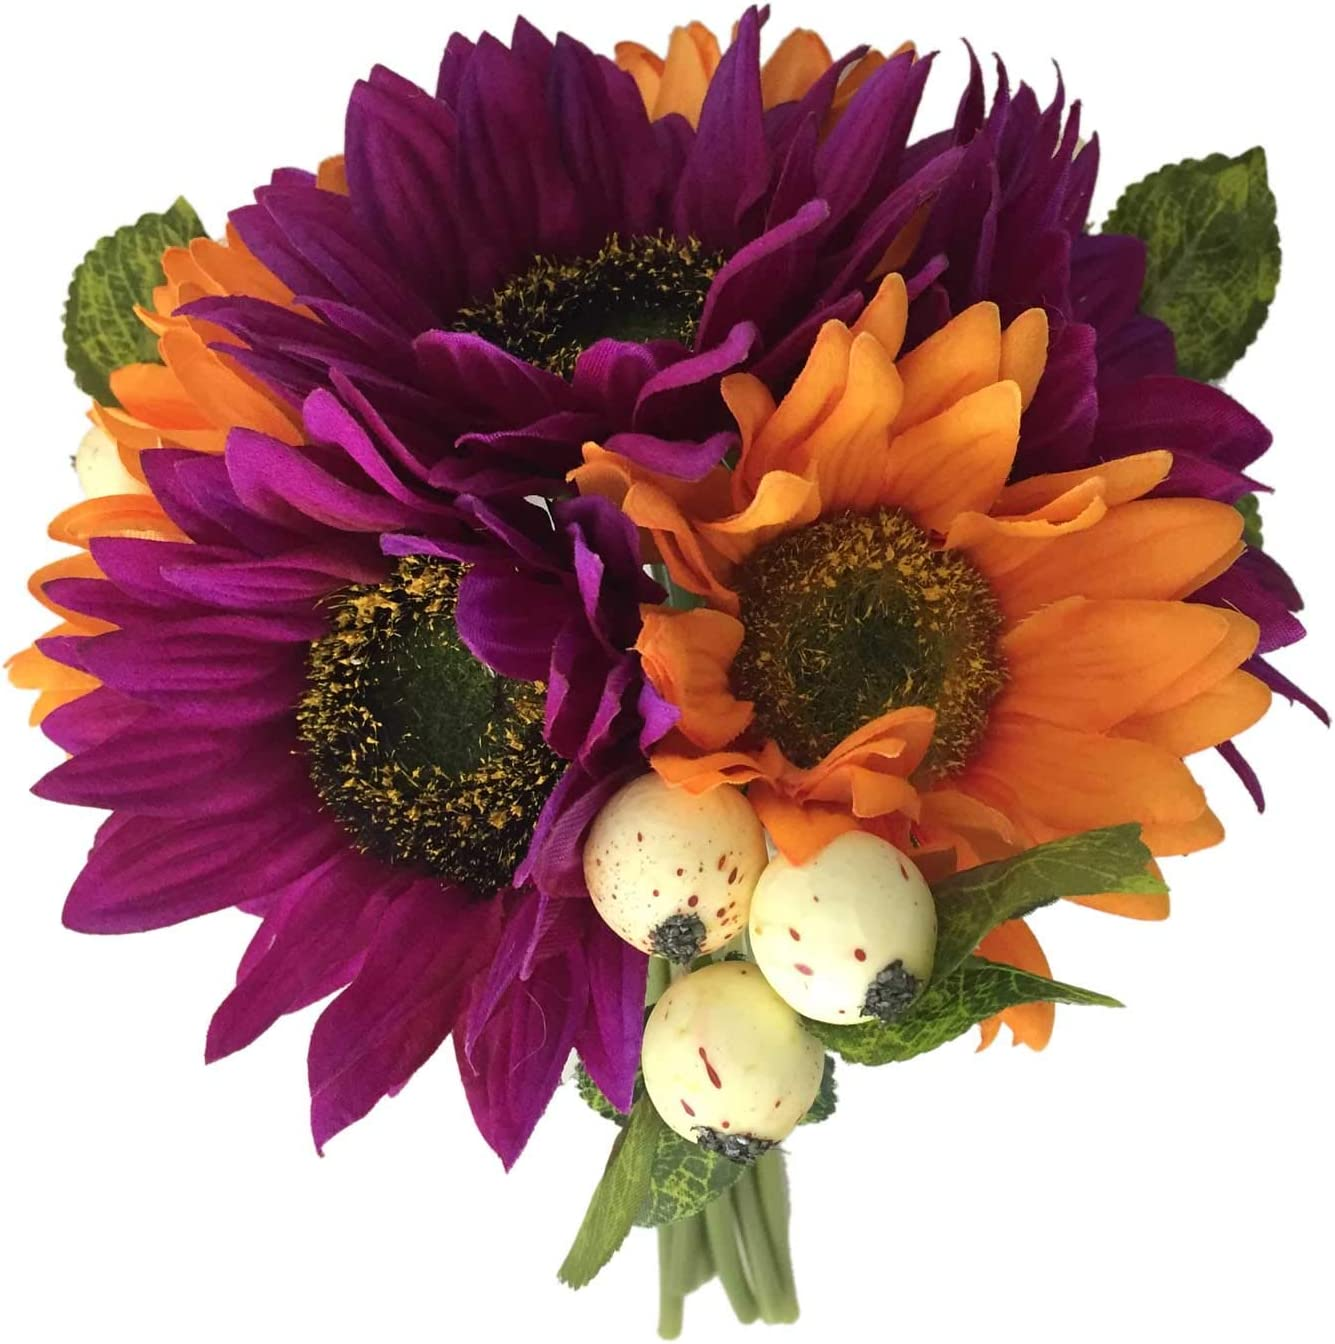 Lily Garden Artificial Flowers Sunflowers with Berry Bouquet (Purple)